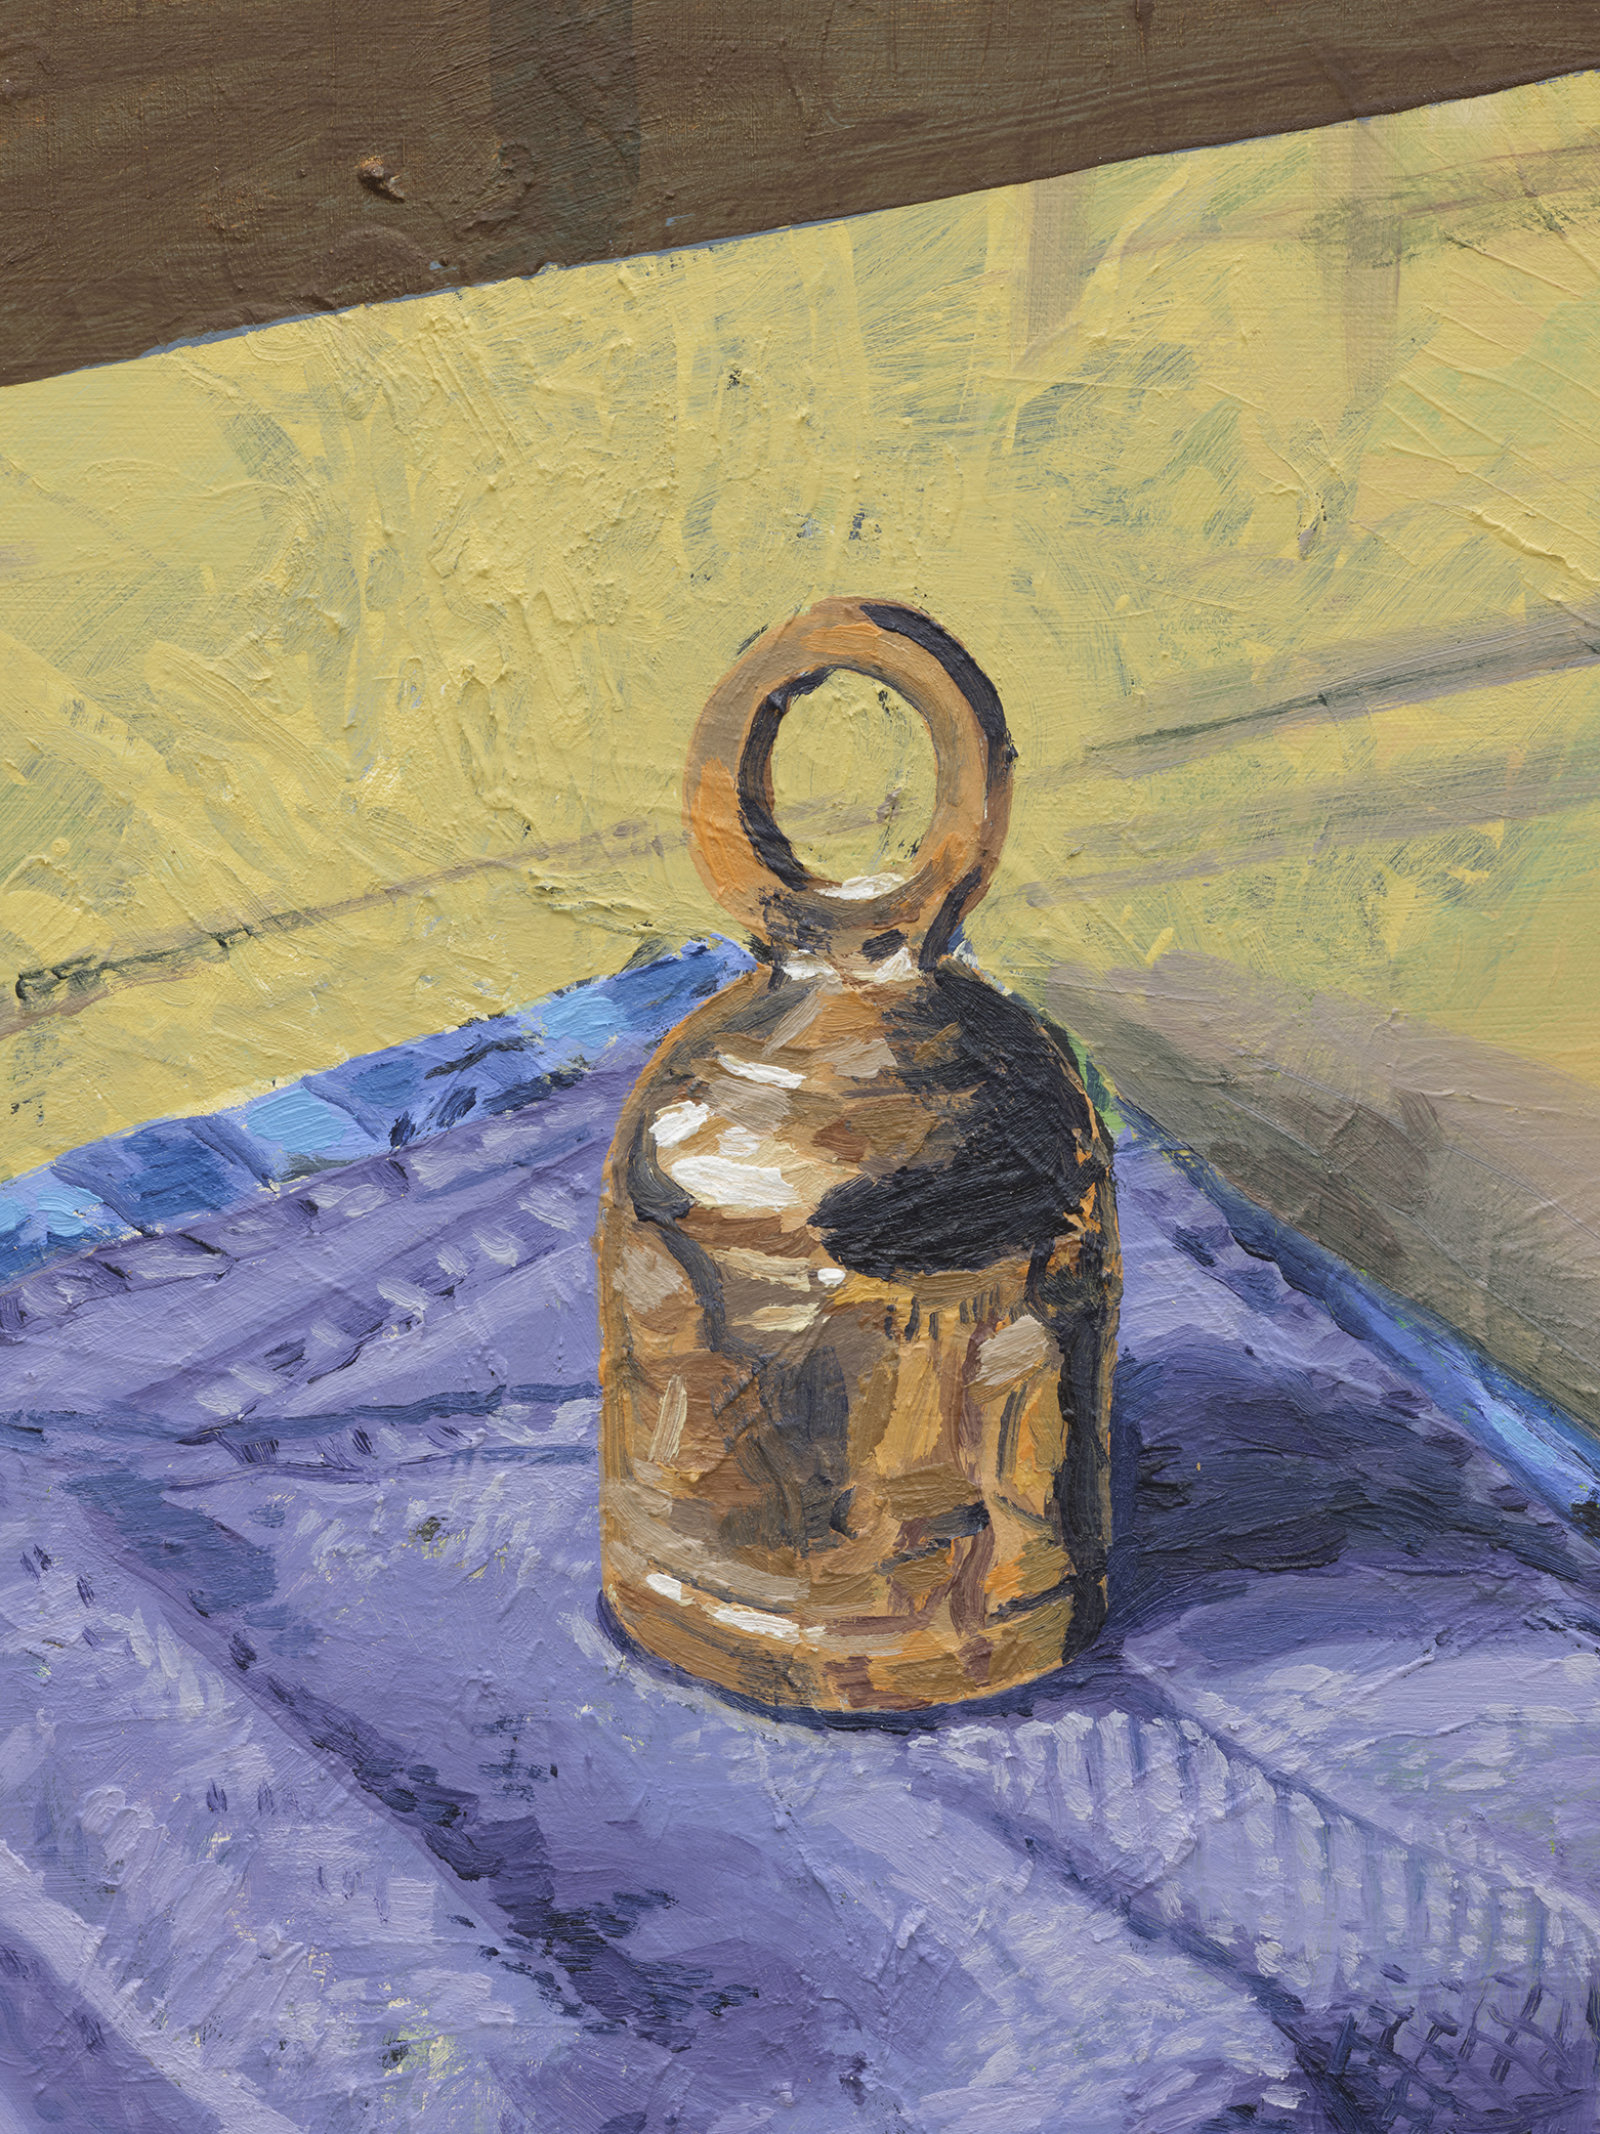 Damian Moppett, Bell and Towels (detail), 2020, oil on canvas, 30 x 27 in. (76 x 69 cm) by Damian Moppett